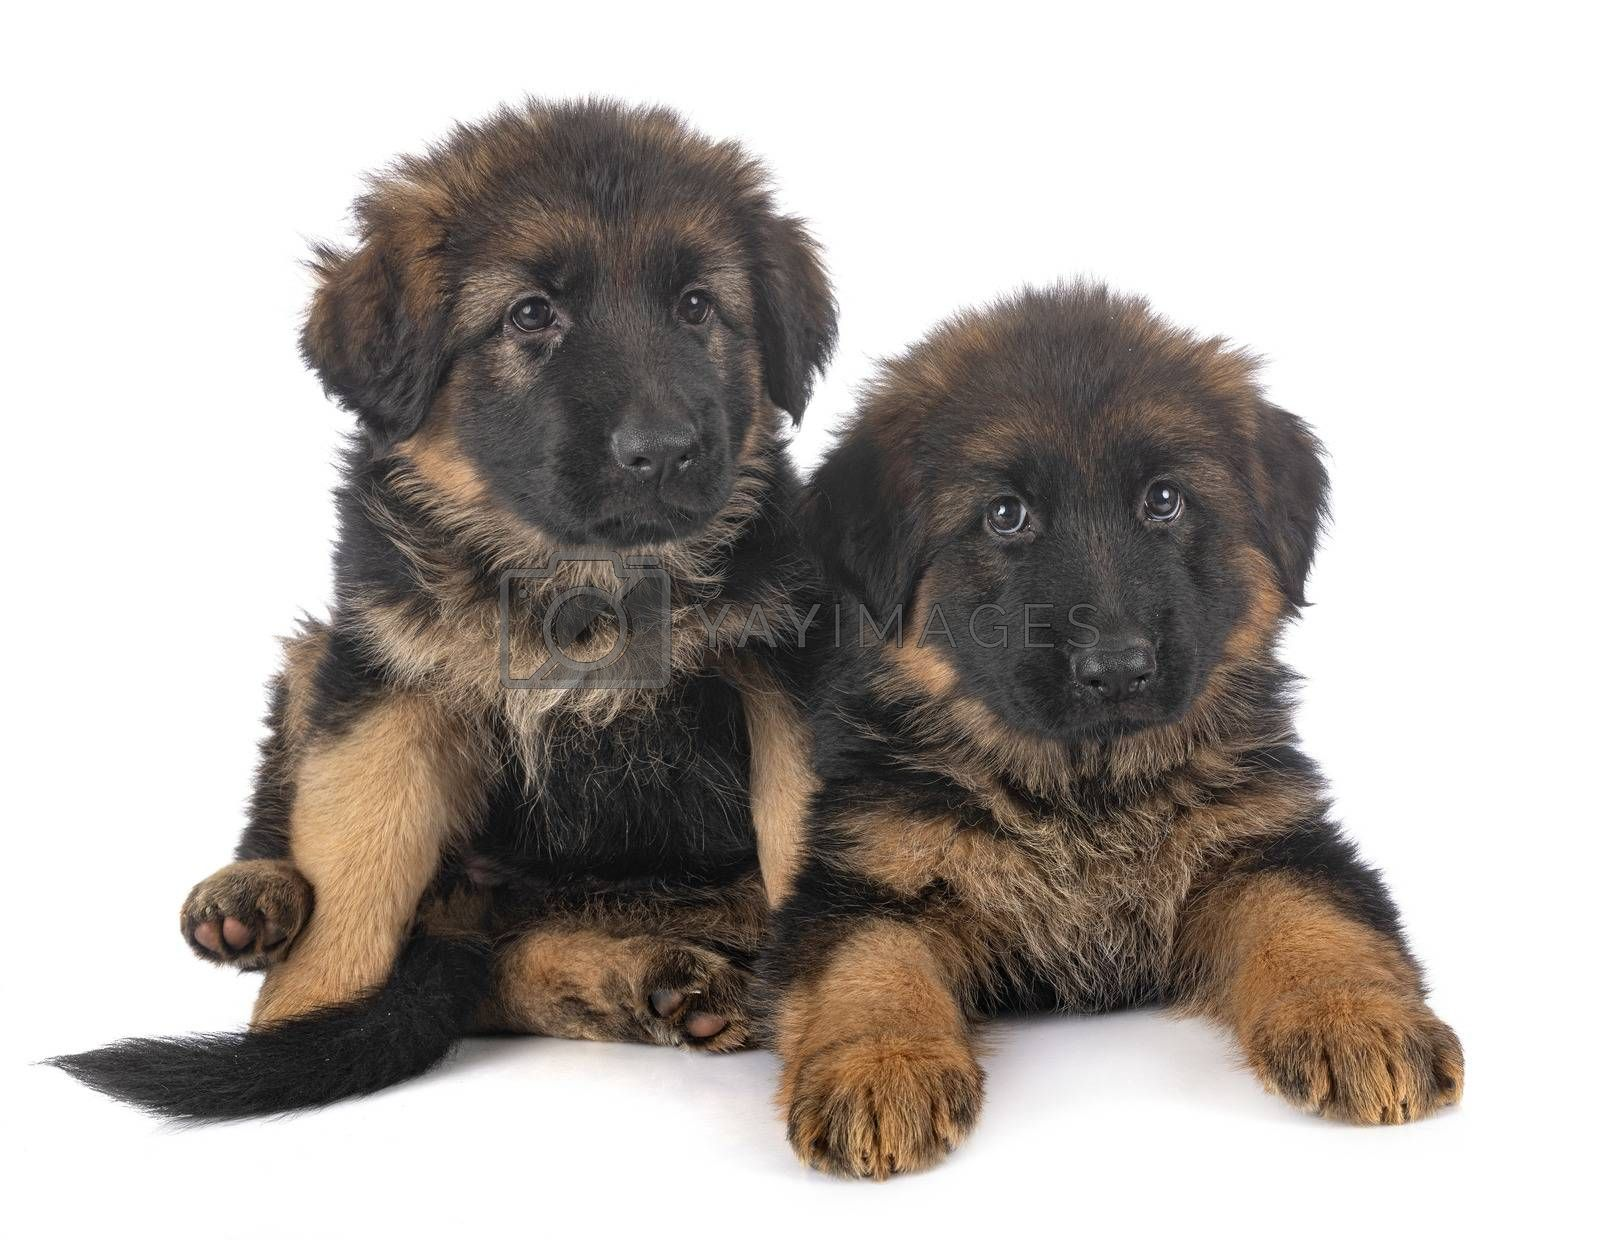 puppies german shepherd in front of white background